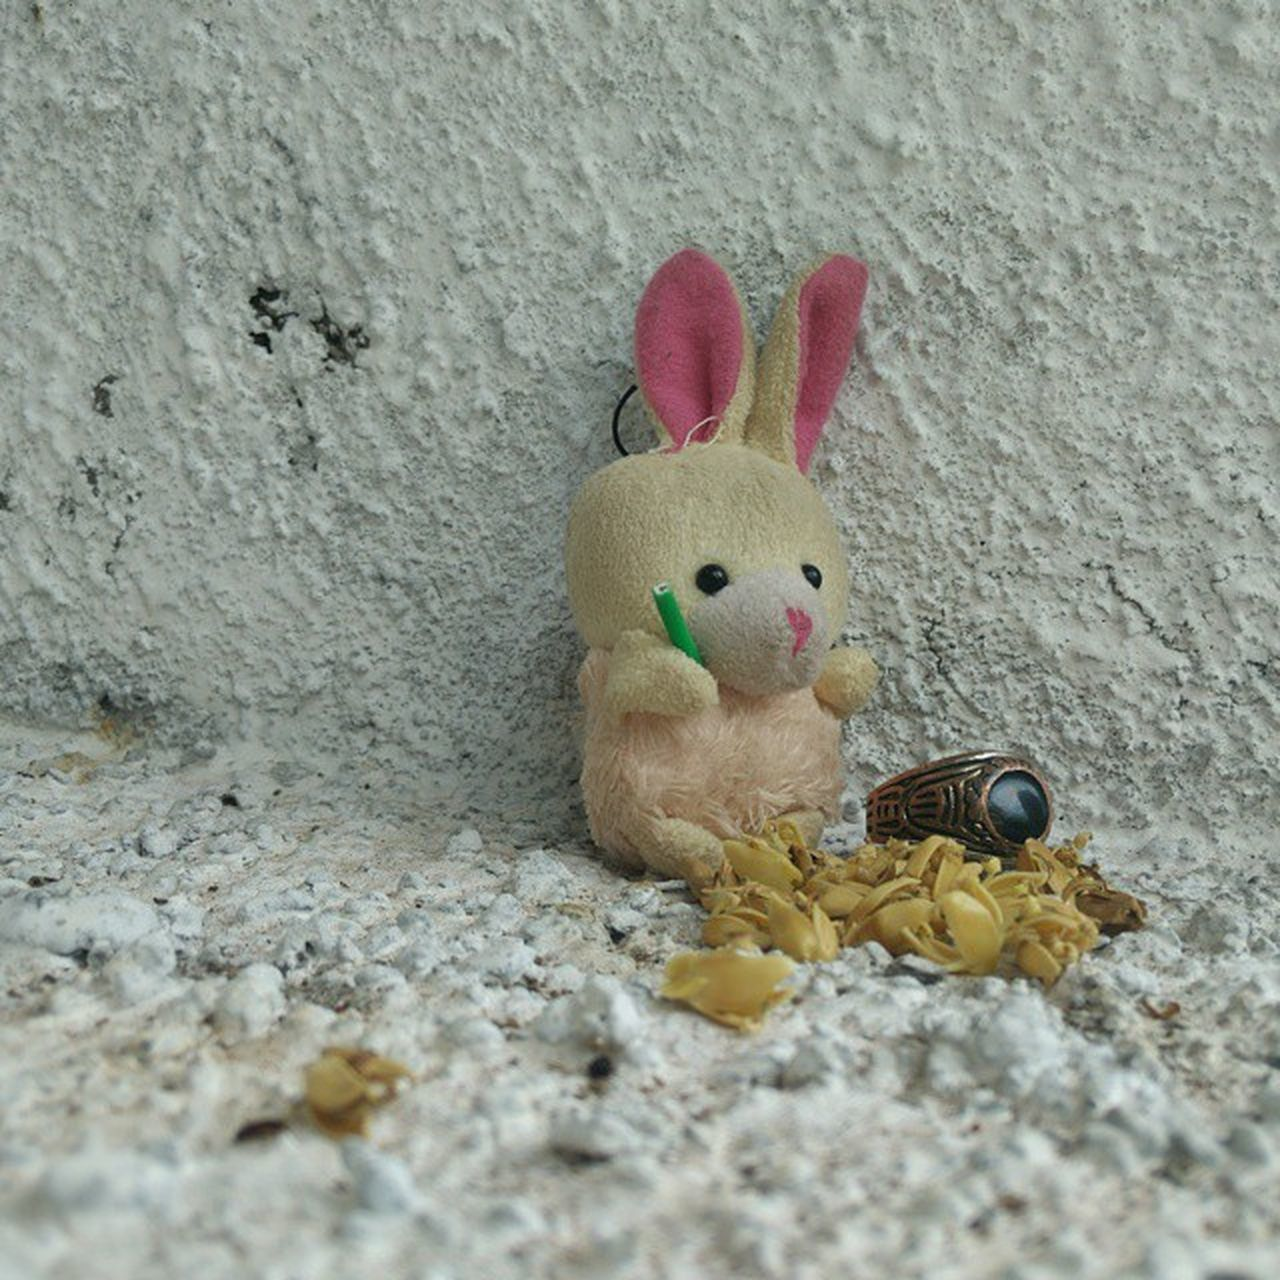 no people, animal representation, celebration, stuffed toy, tradition, easter, close-up, indoors, day